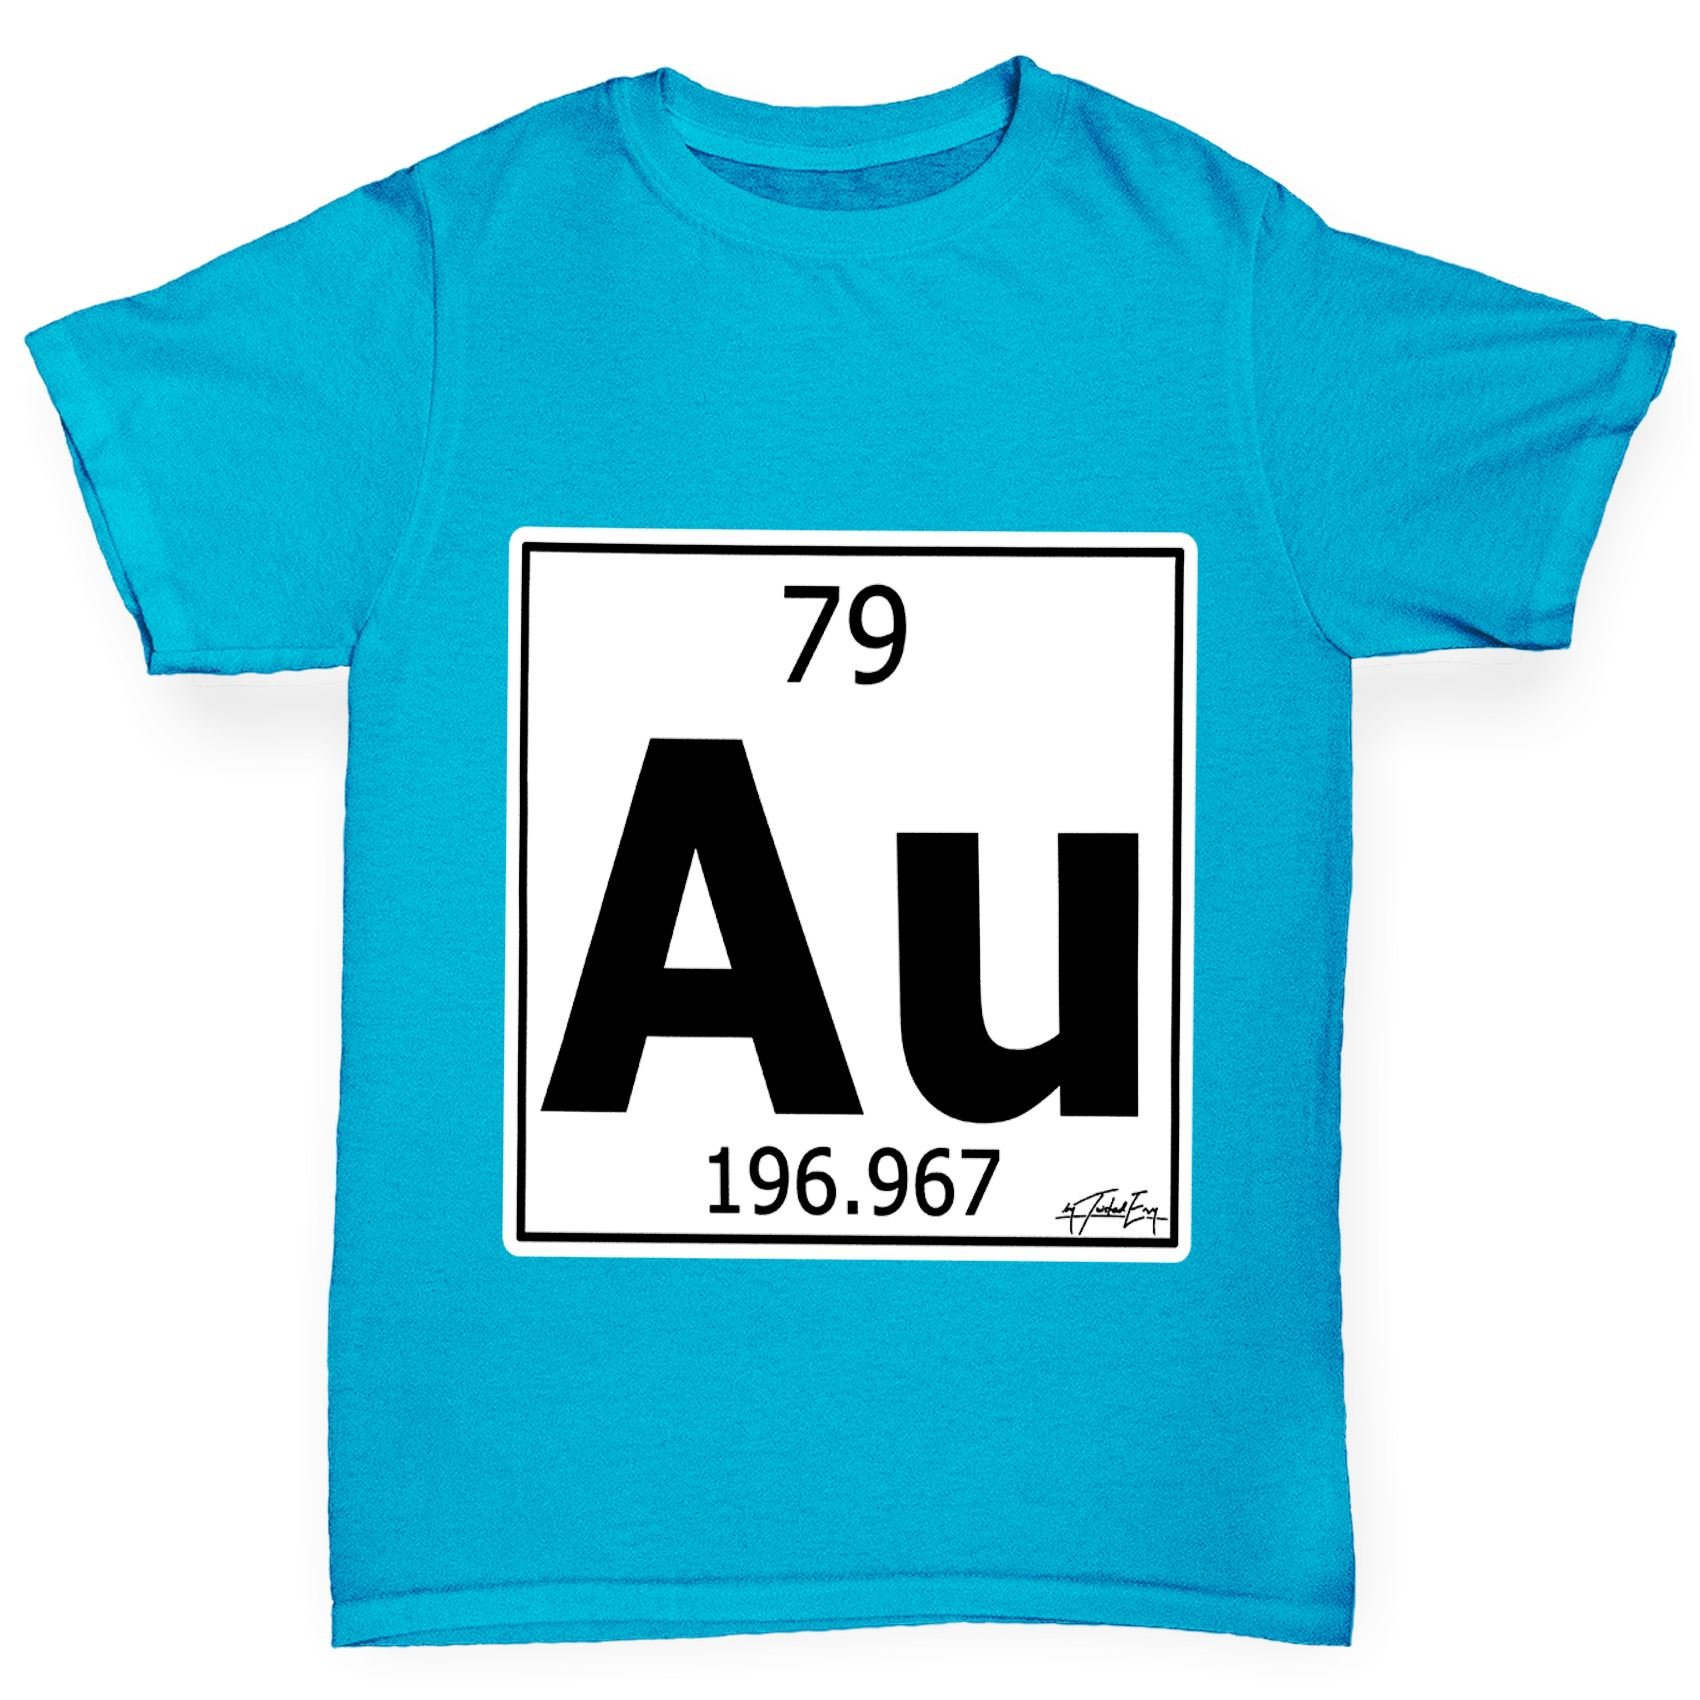 Twisted envy boys periodic table element au gold t shirt ebay image is loading twisted envy boy 039 s periodic table element urtaz Gallery